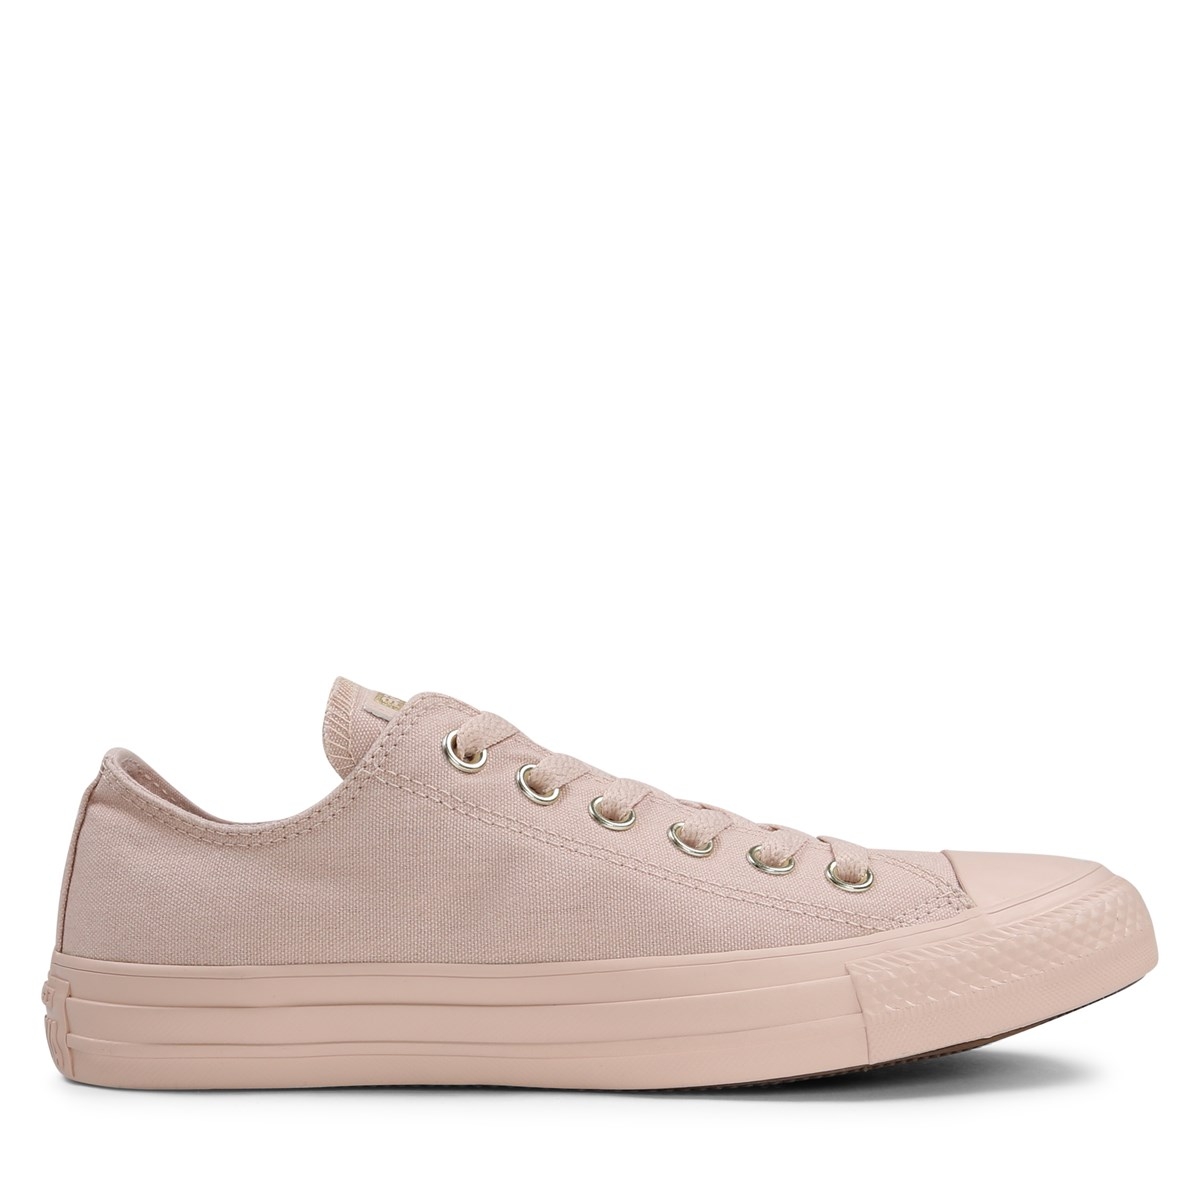 converse all star ox mono femme